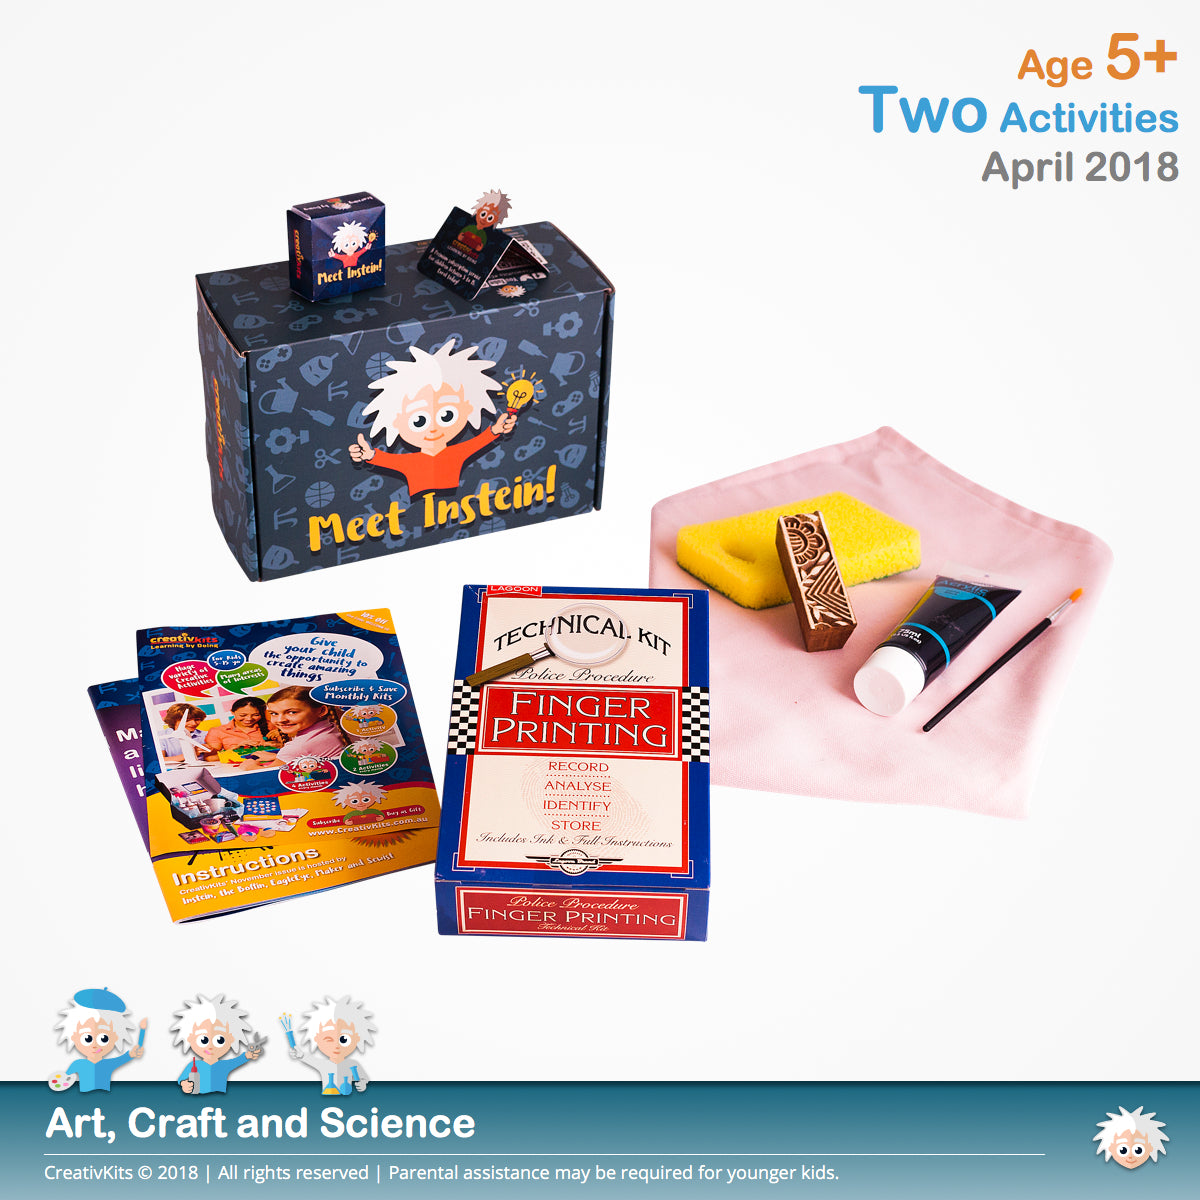 DIY Block Printed Cushion Covers and Fingerprint Investigation and Analysis | April Standard Art and Science Combination Kit | Age 5+